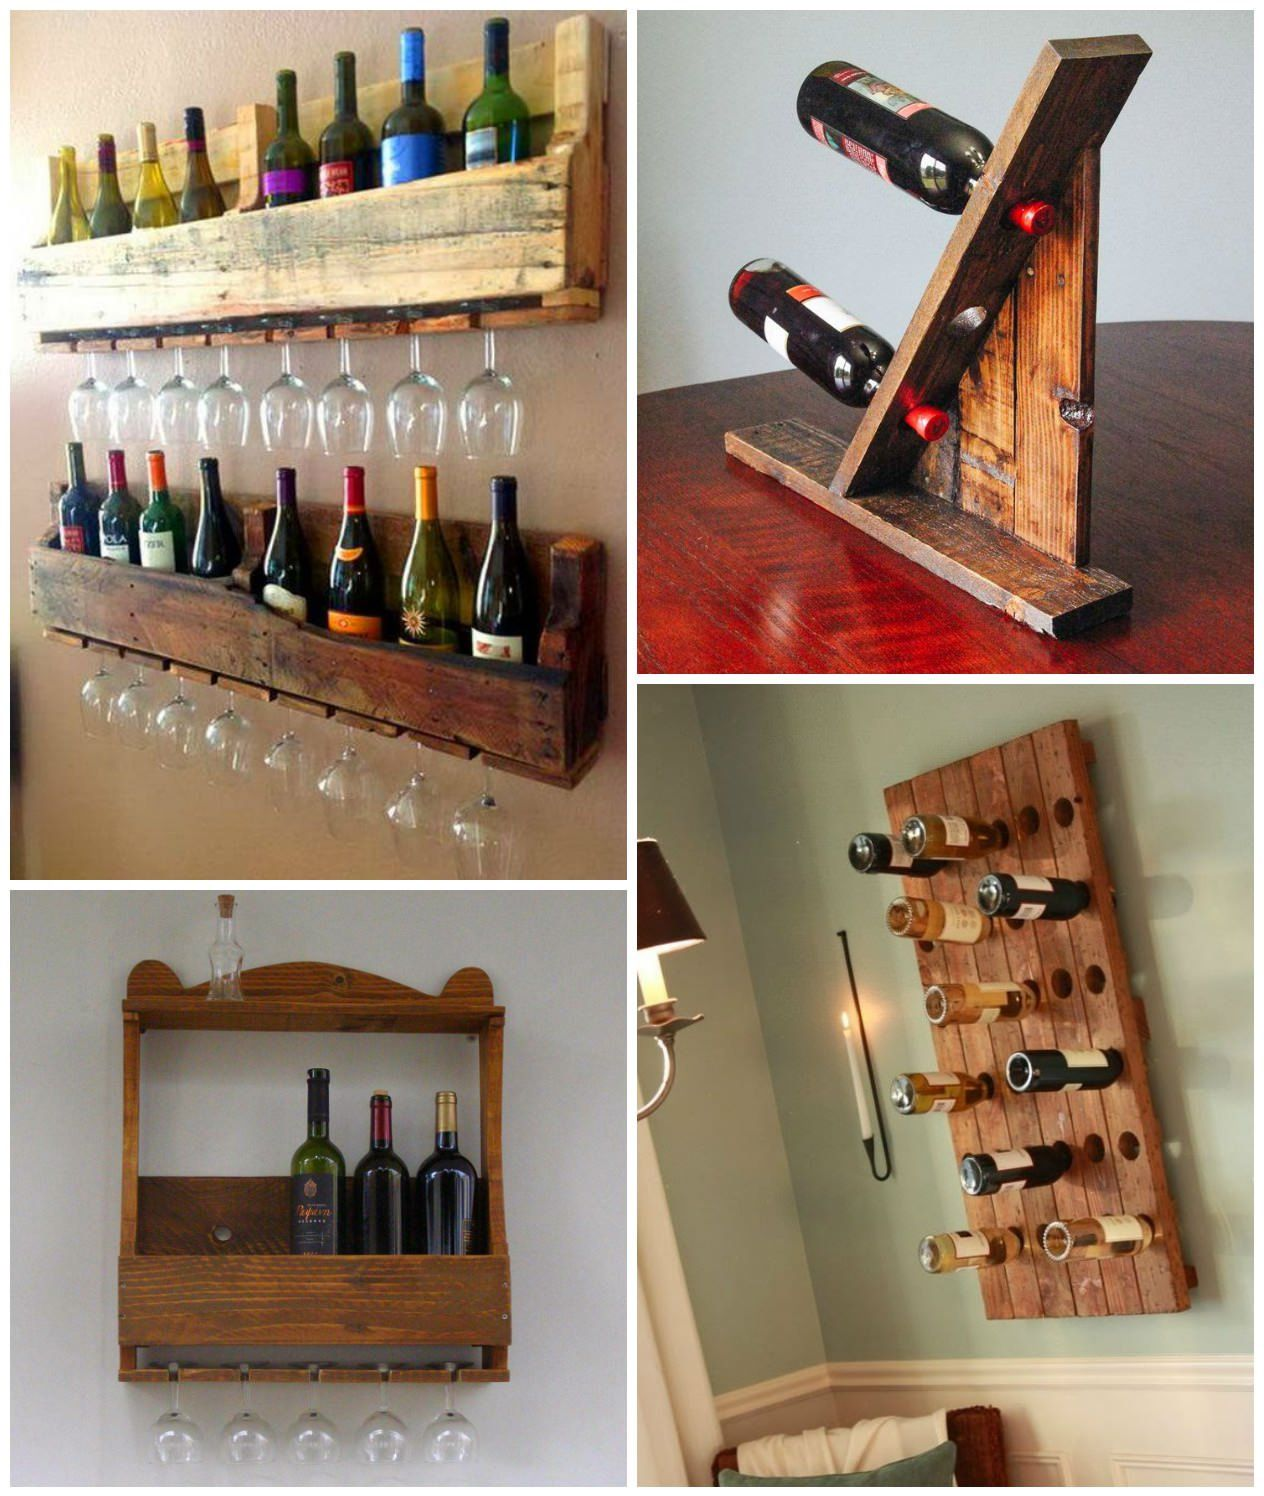 Wine Racks Made From Recycled Pallet Wood | Diy rack, Wine rack ...